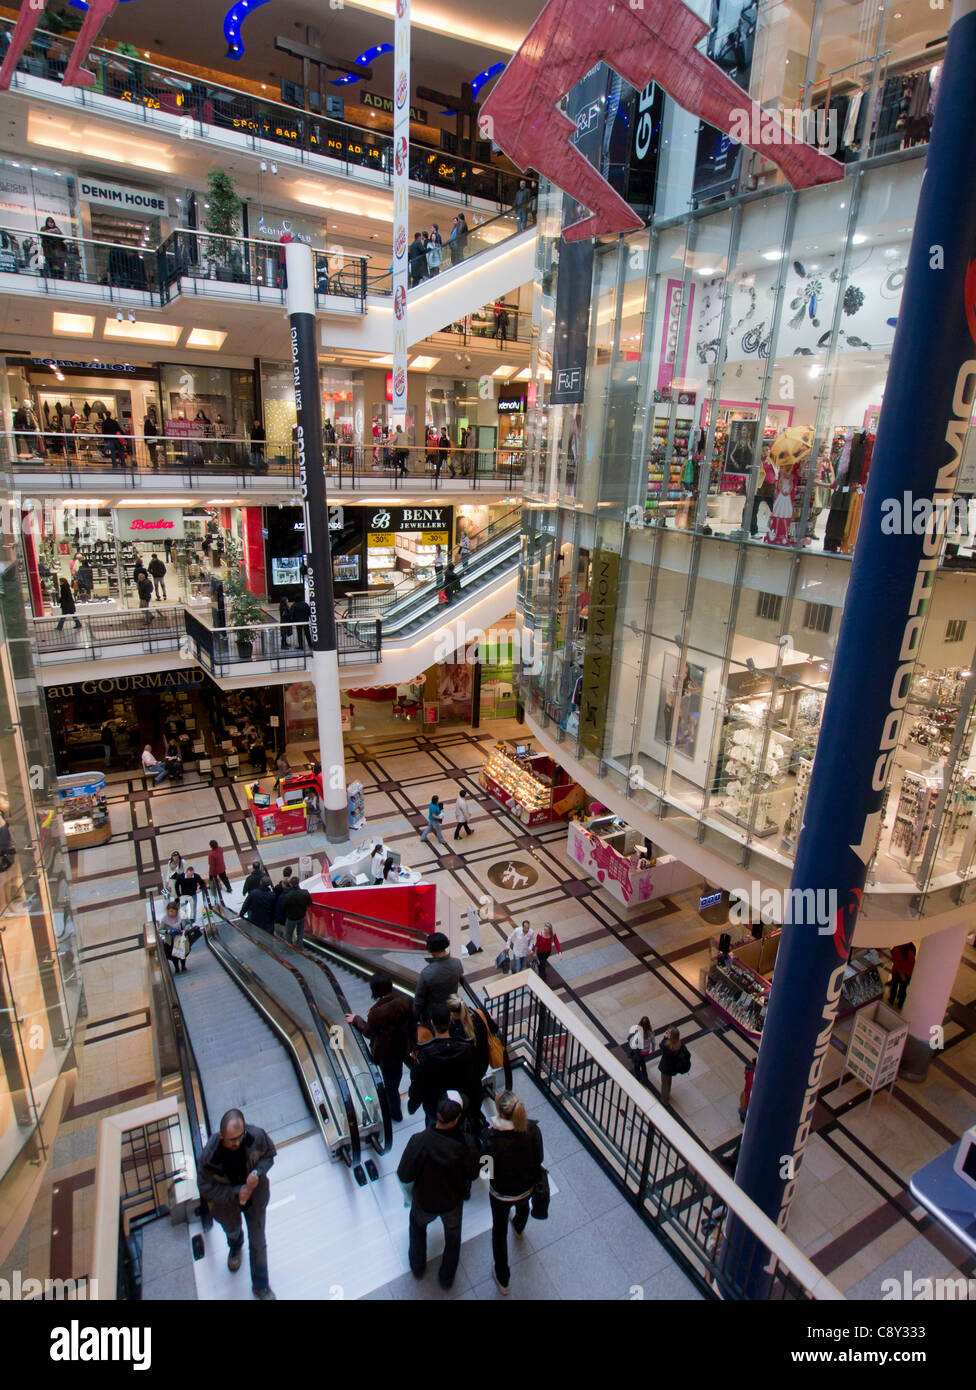 Palladium Shopping Mall in Prague in Czech Republic - Stock Image